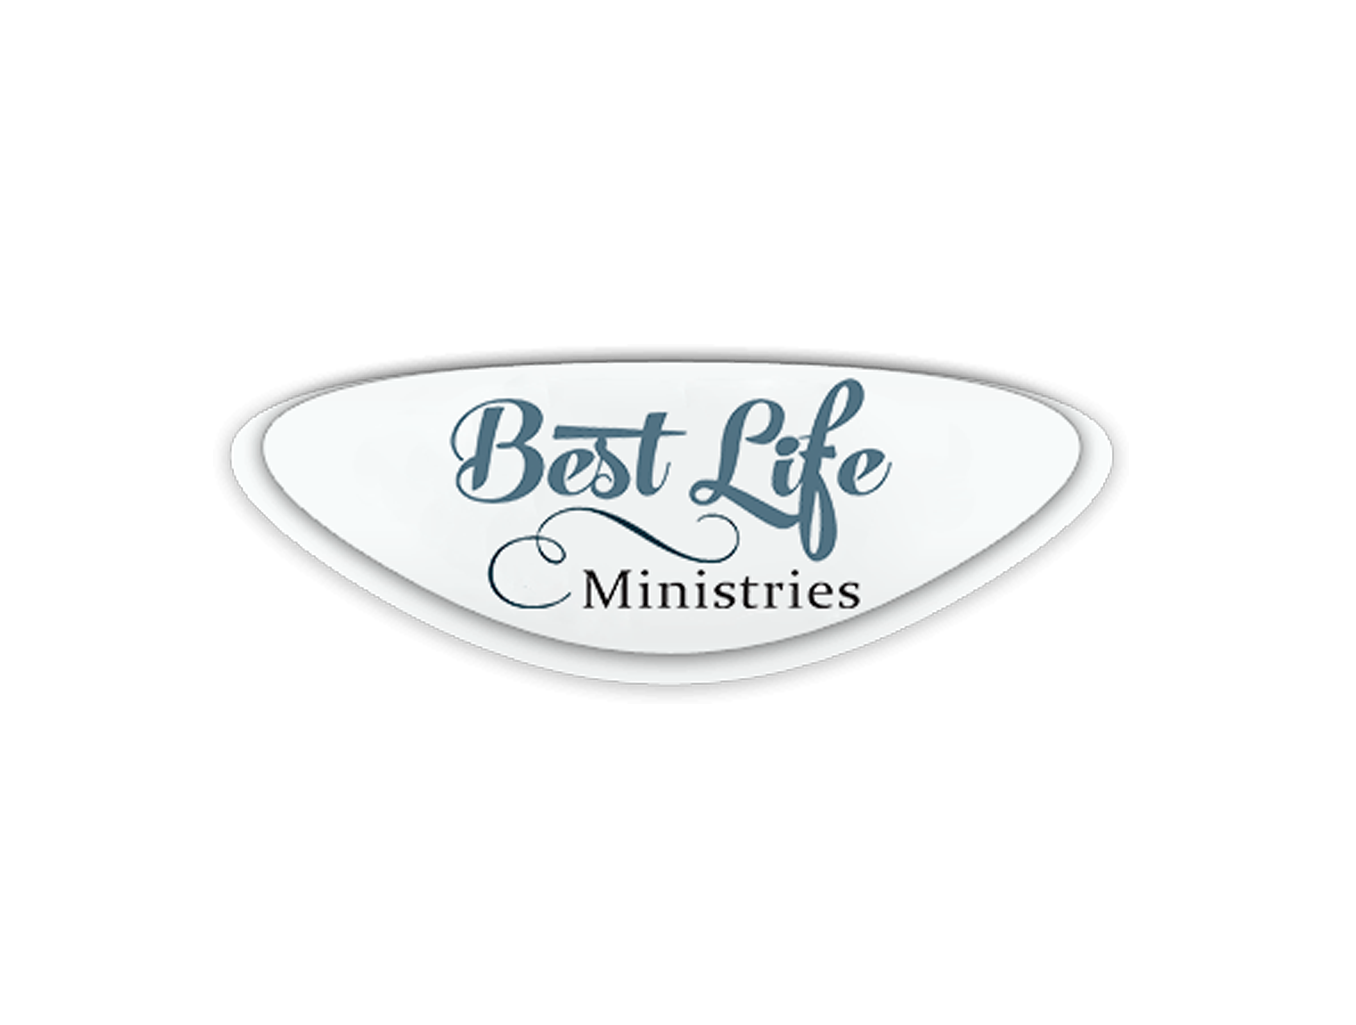 Best Life Ministries